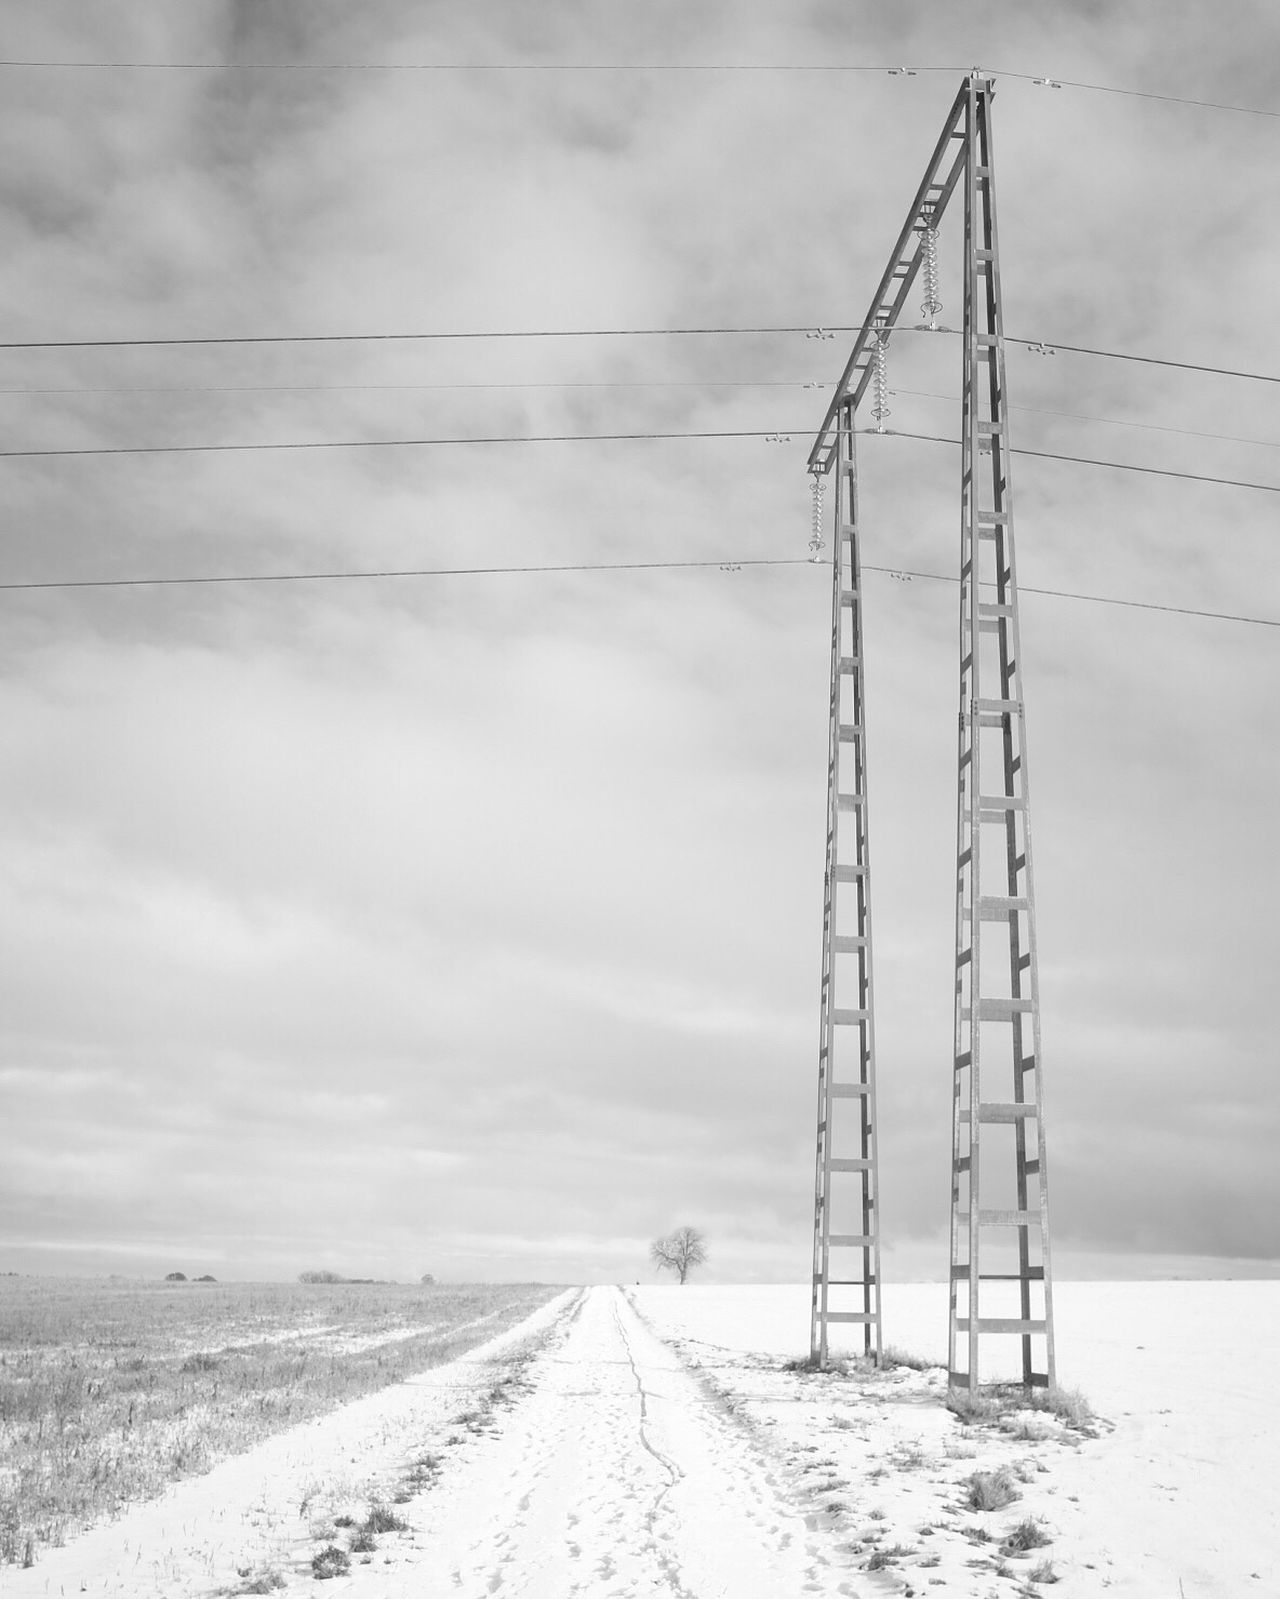 Power Line  Landscape Electricity Pylon Shootermag Bw_collection EyeEm Best Shots - Black + White Black And White Winter